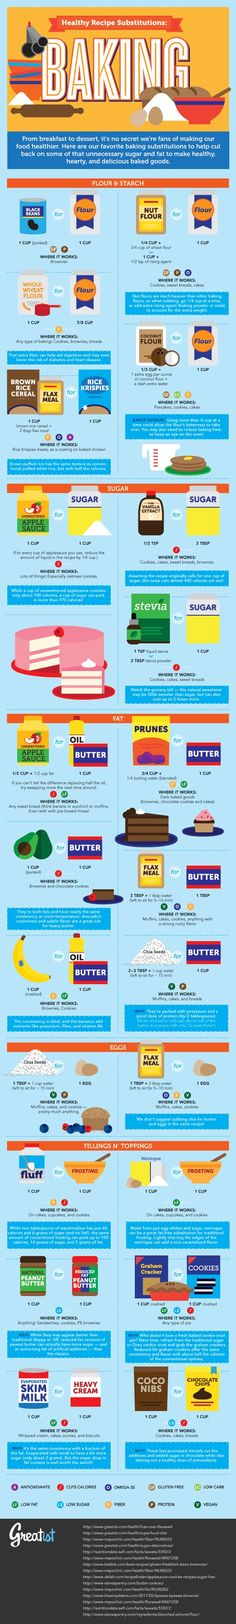 how interesting.. Recipe Substitutions: Baking